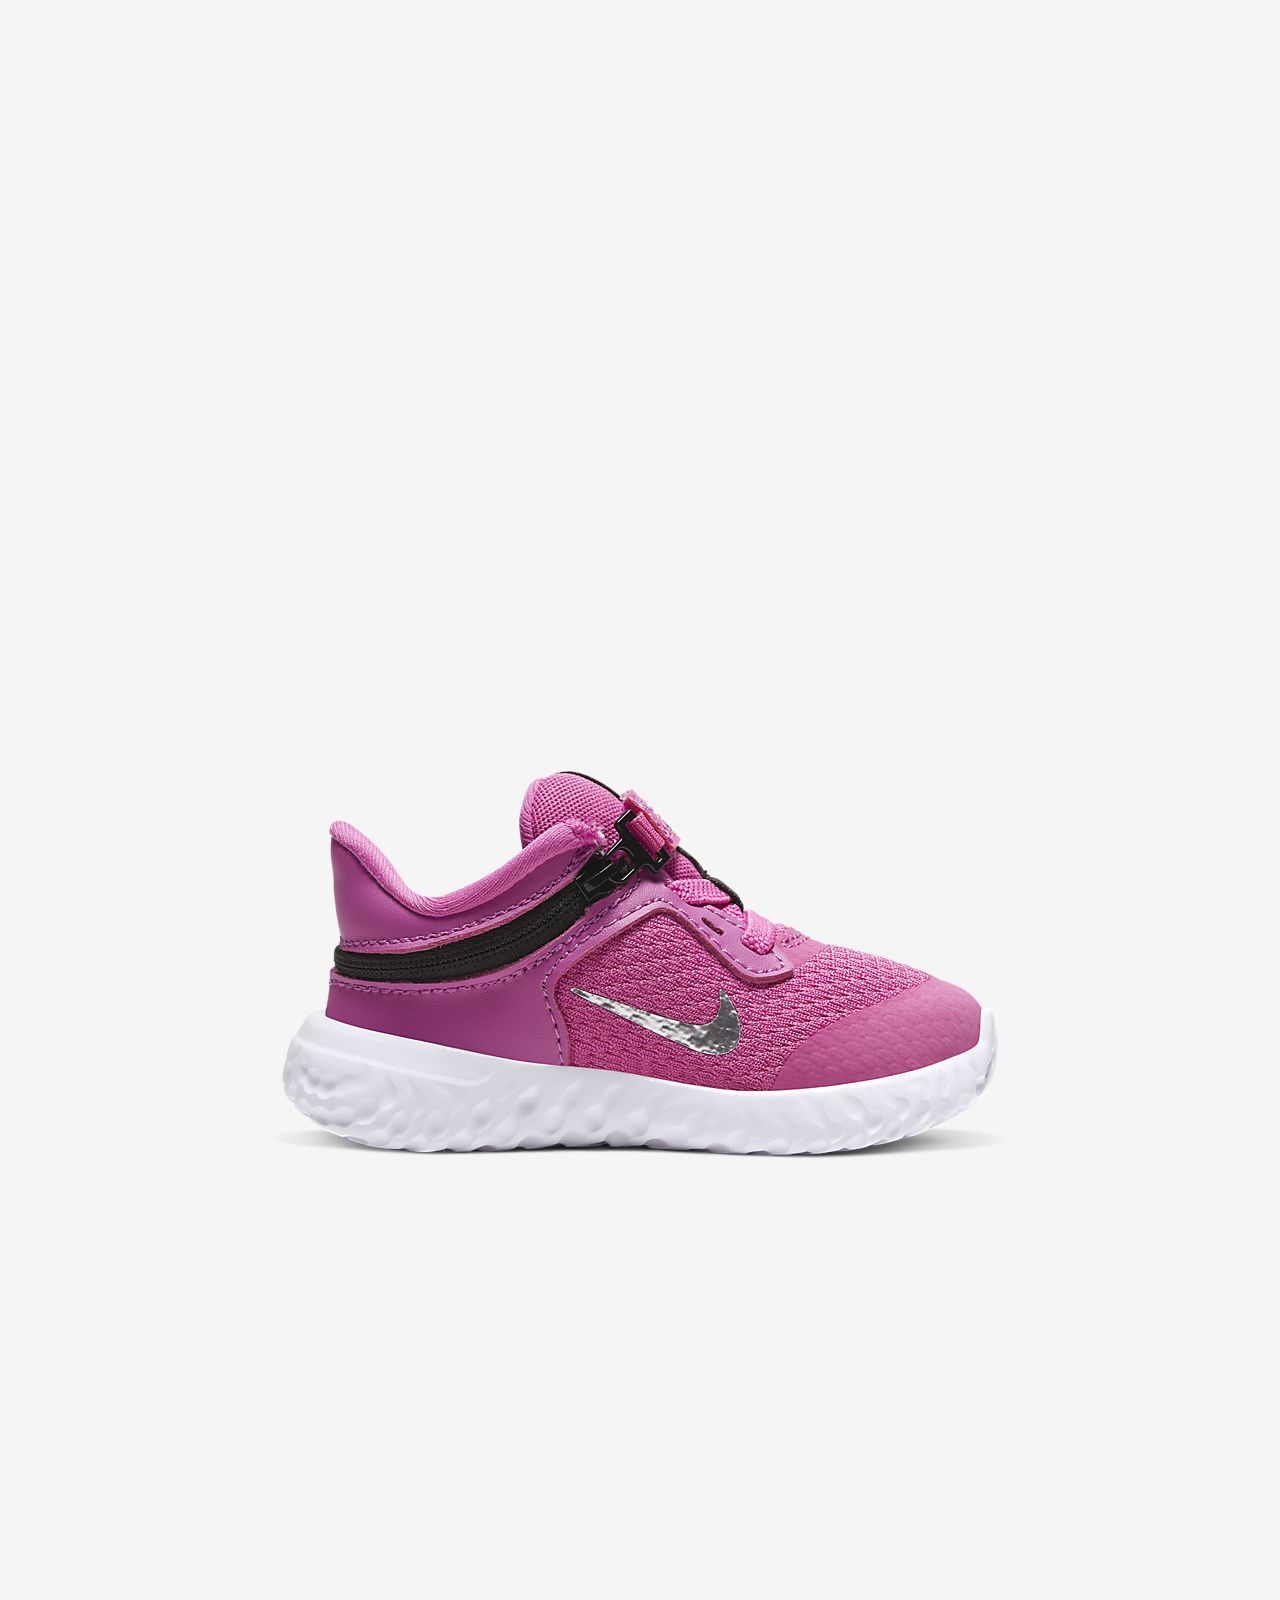 chaussure enfant fille nike 33